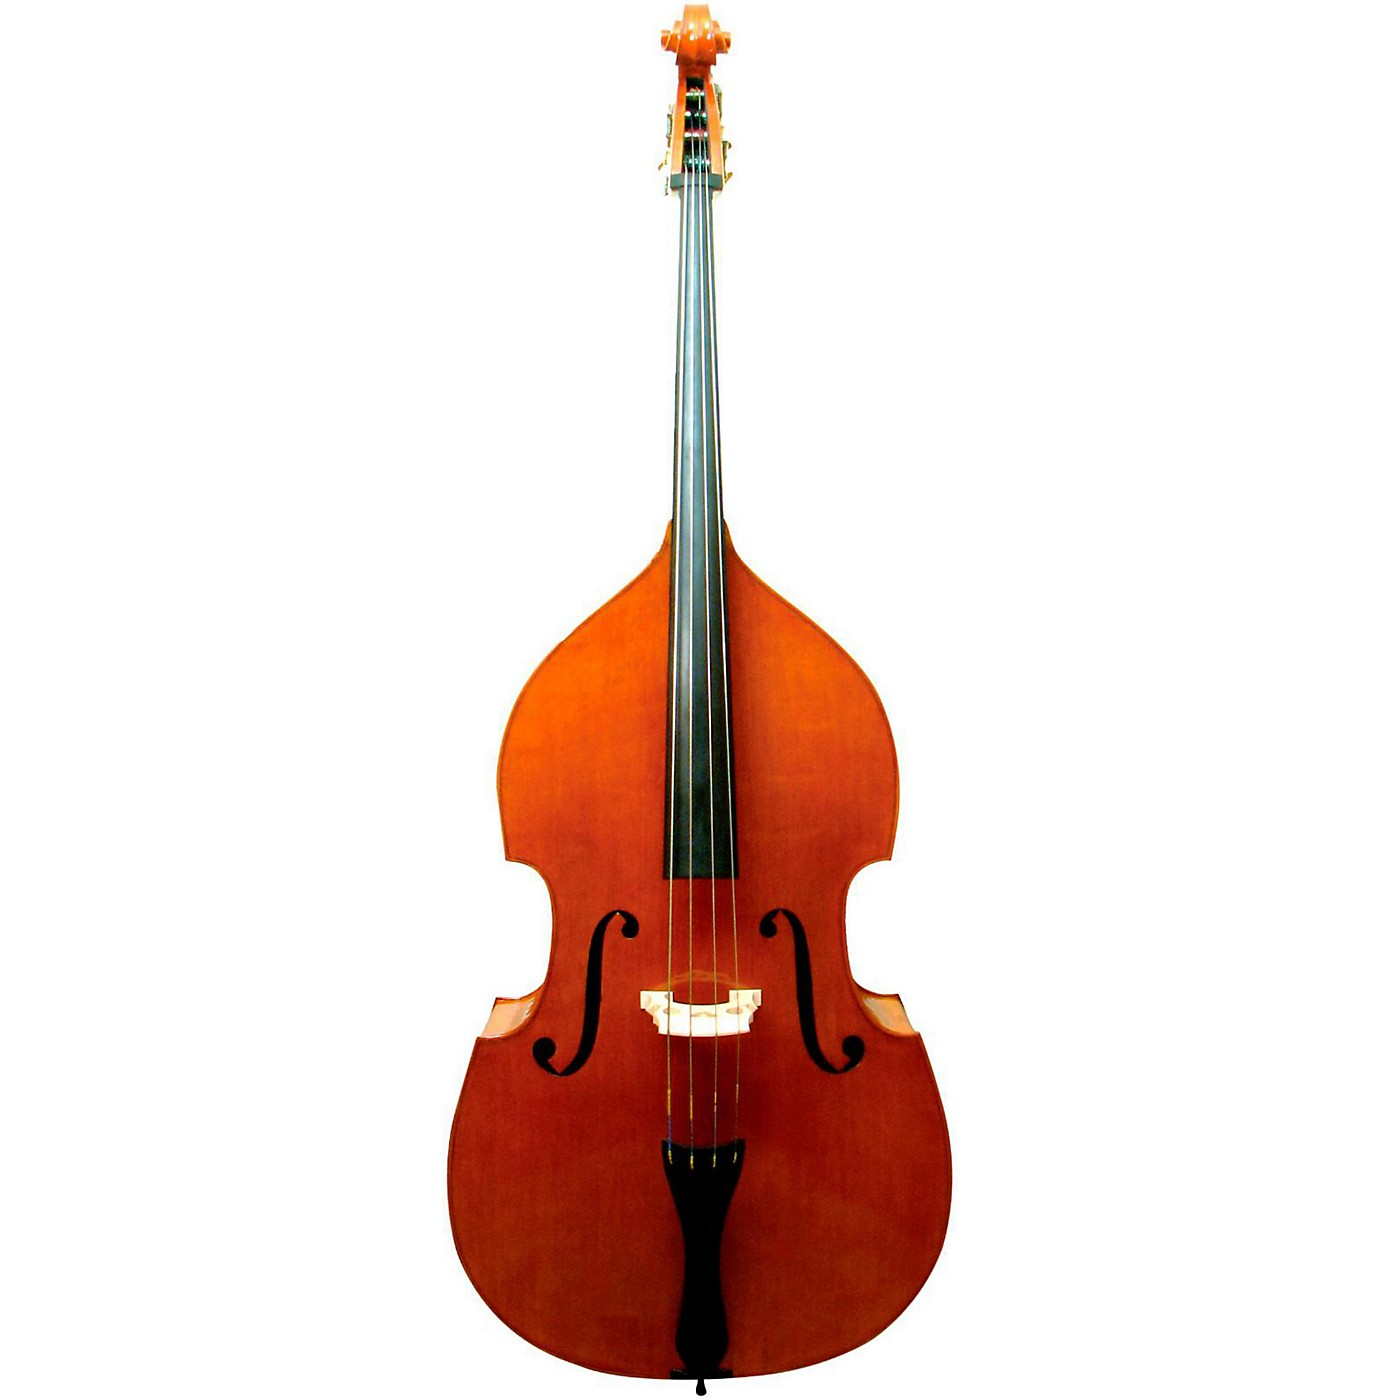 Maple Leaf Strings Model 140 Craftsman Collection Stradivarius Double Bass thumbnail